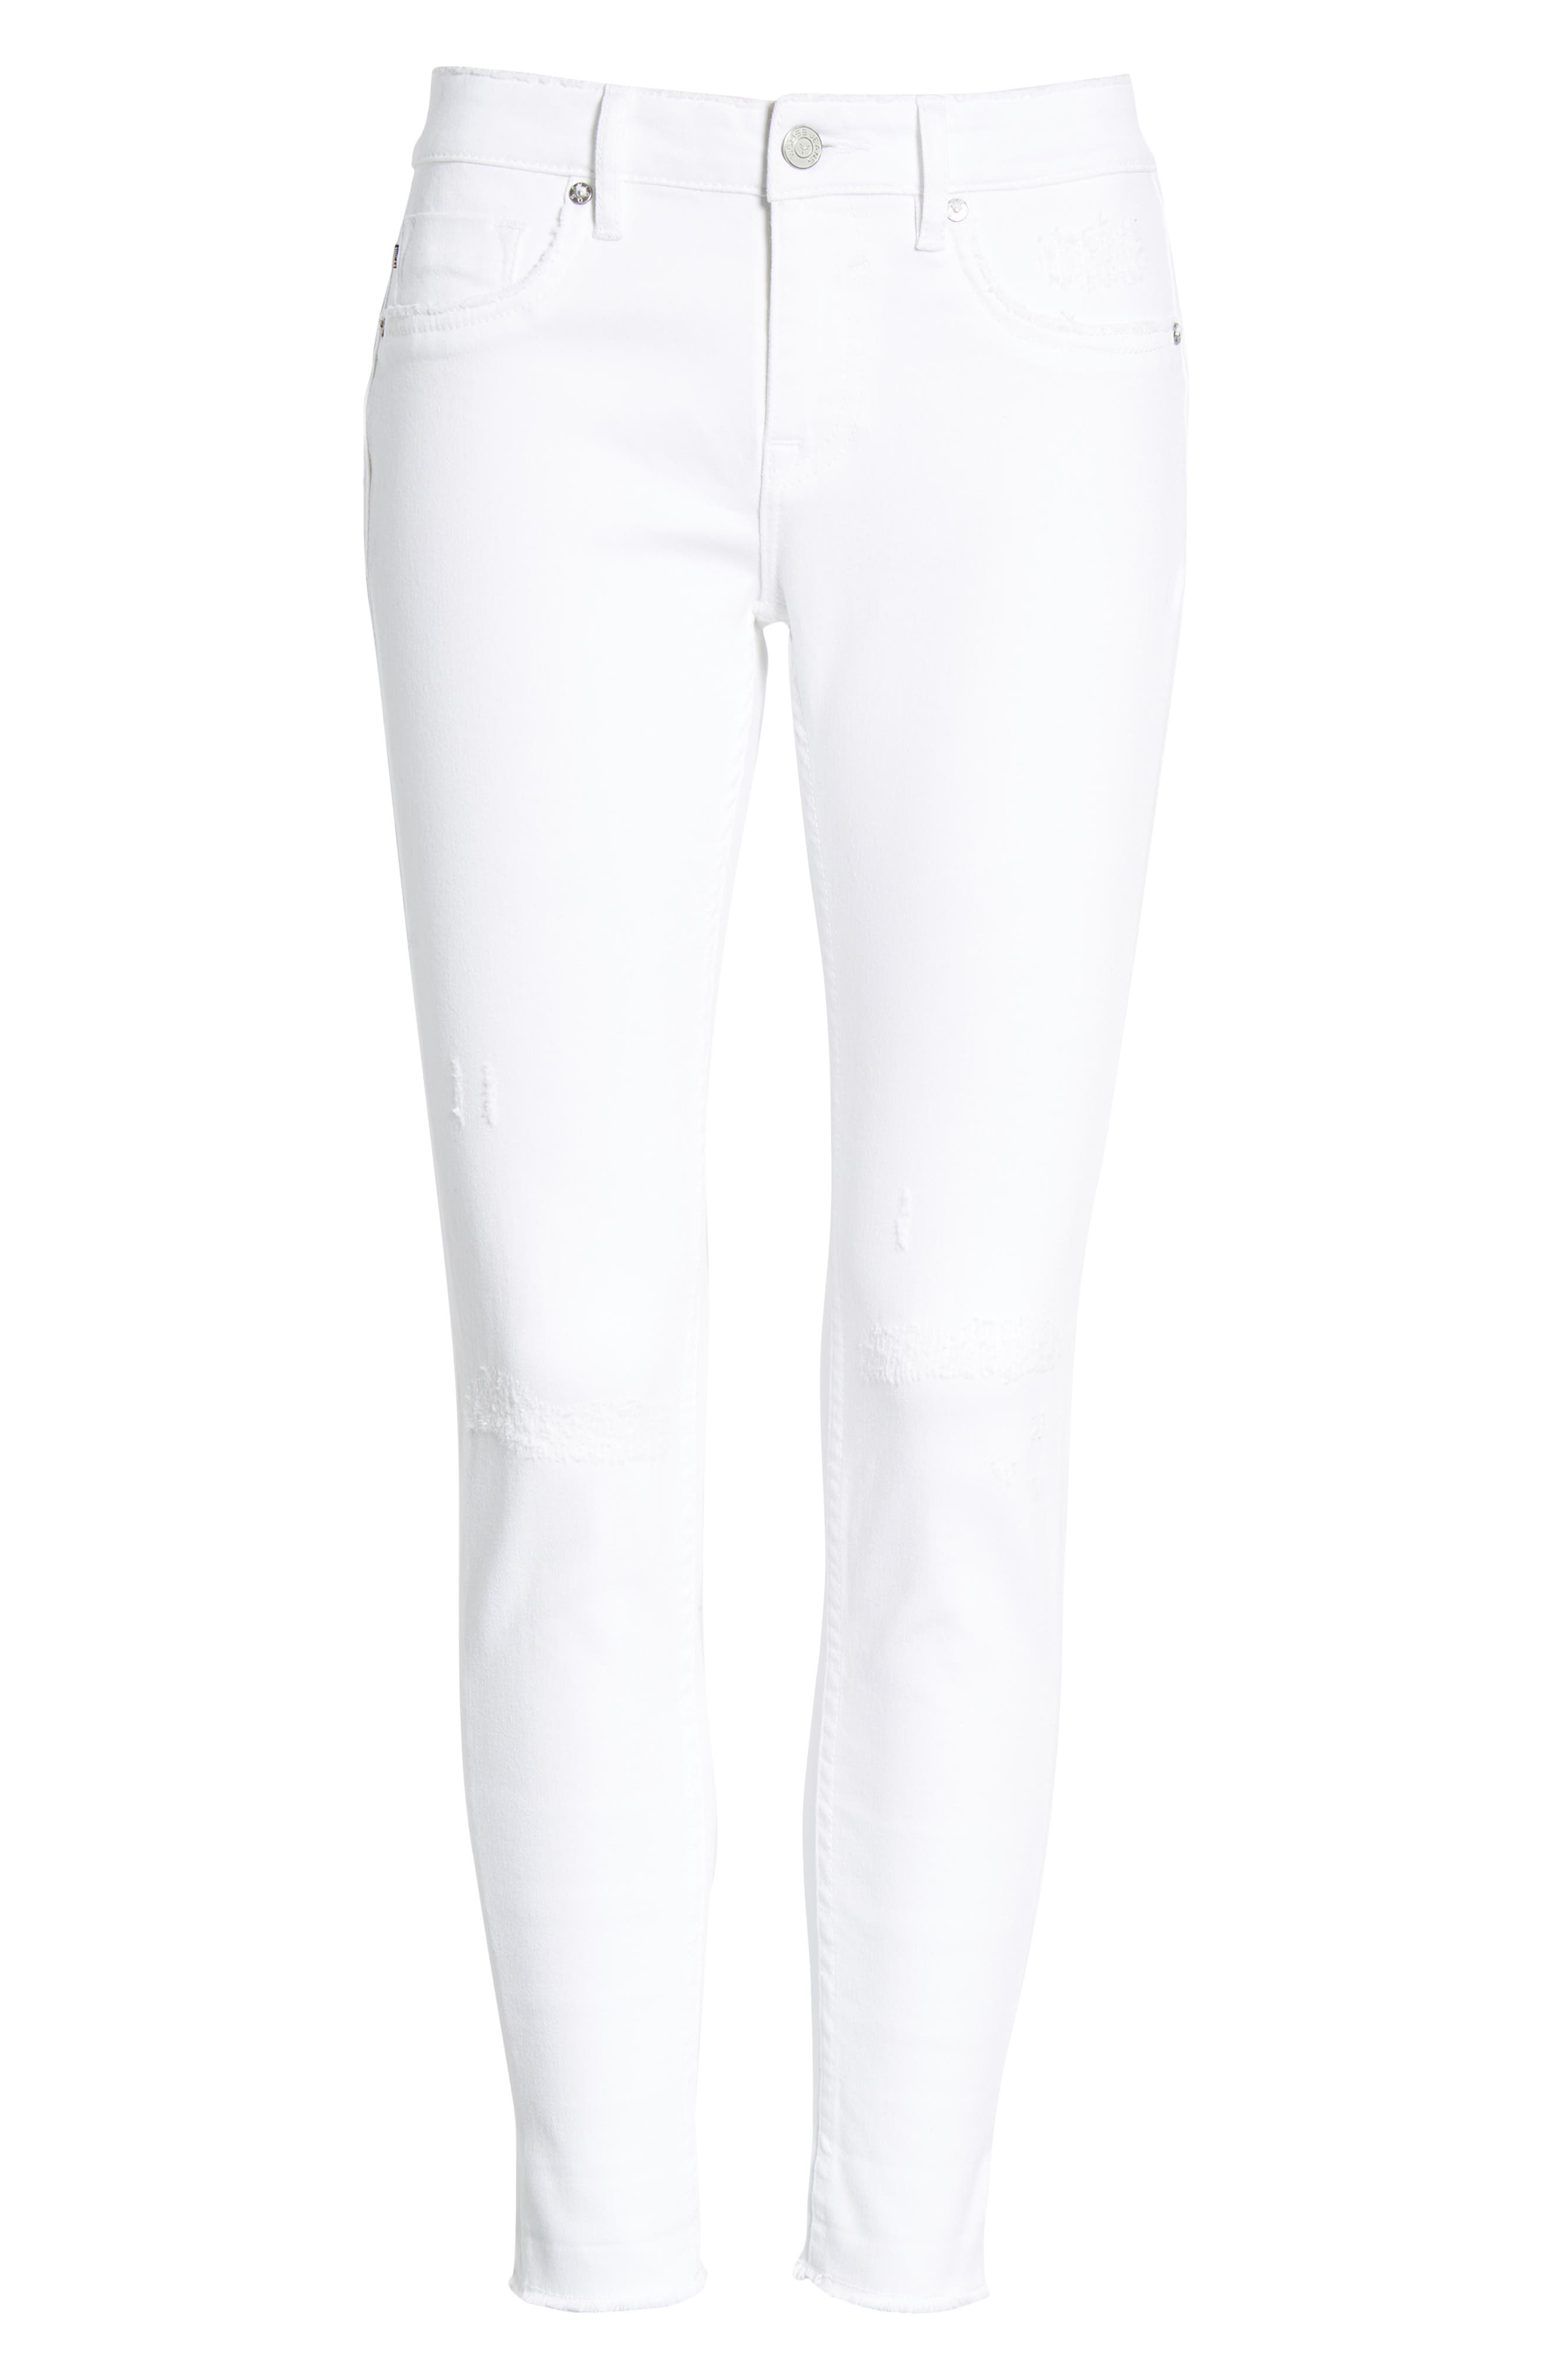 Thompson Tomboy Distressed Cuffed Crop Skinny Jeans,                             Alternate thumbnail 7, color,